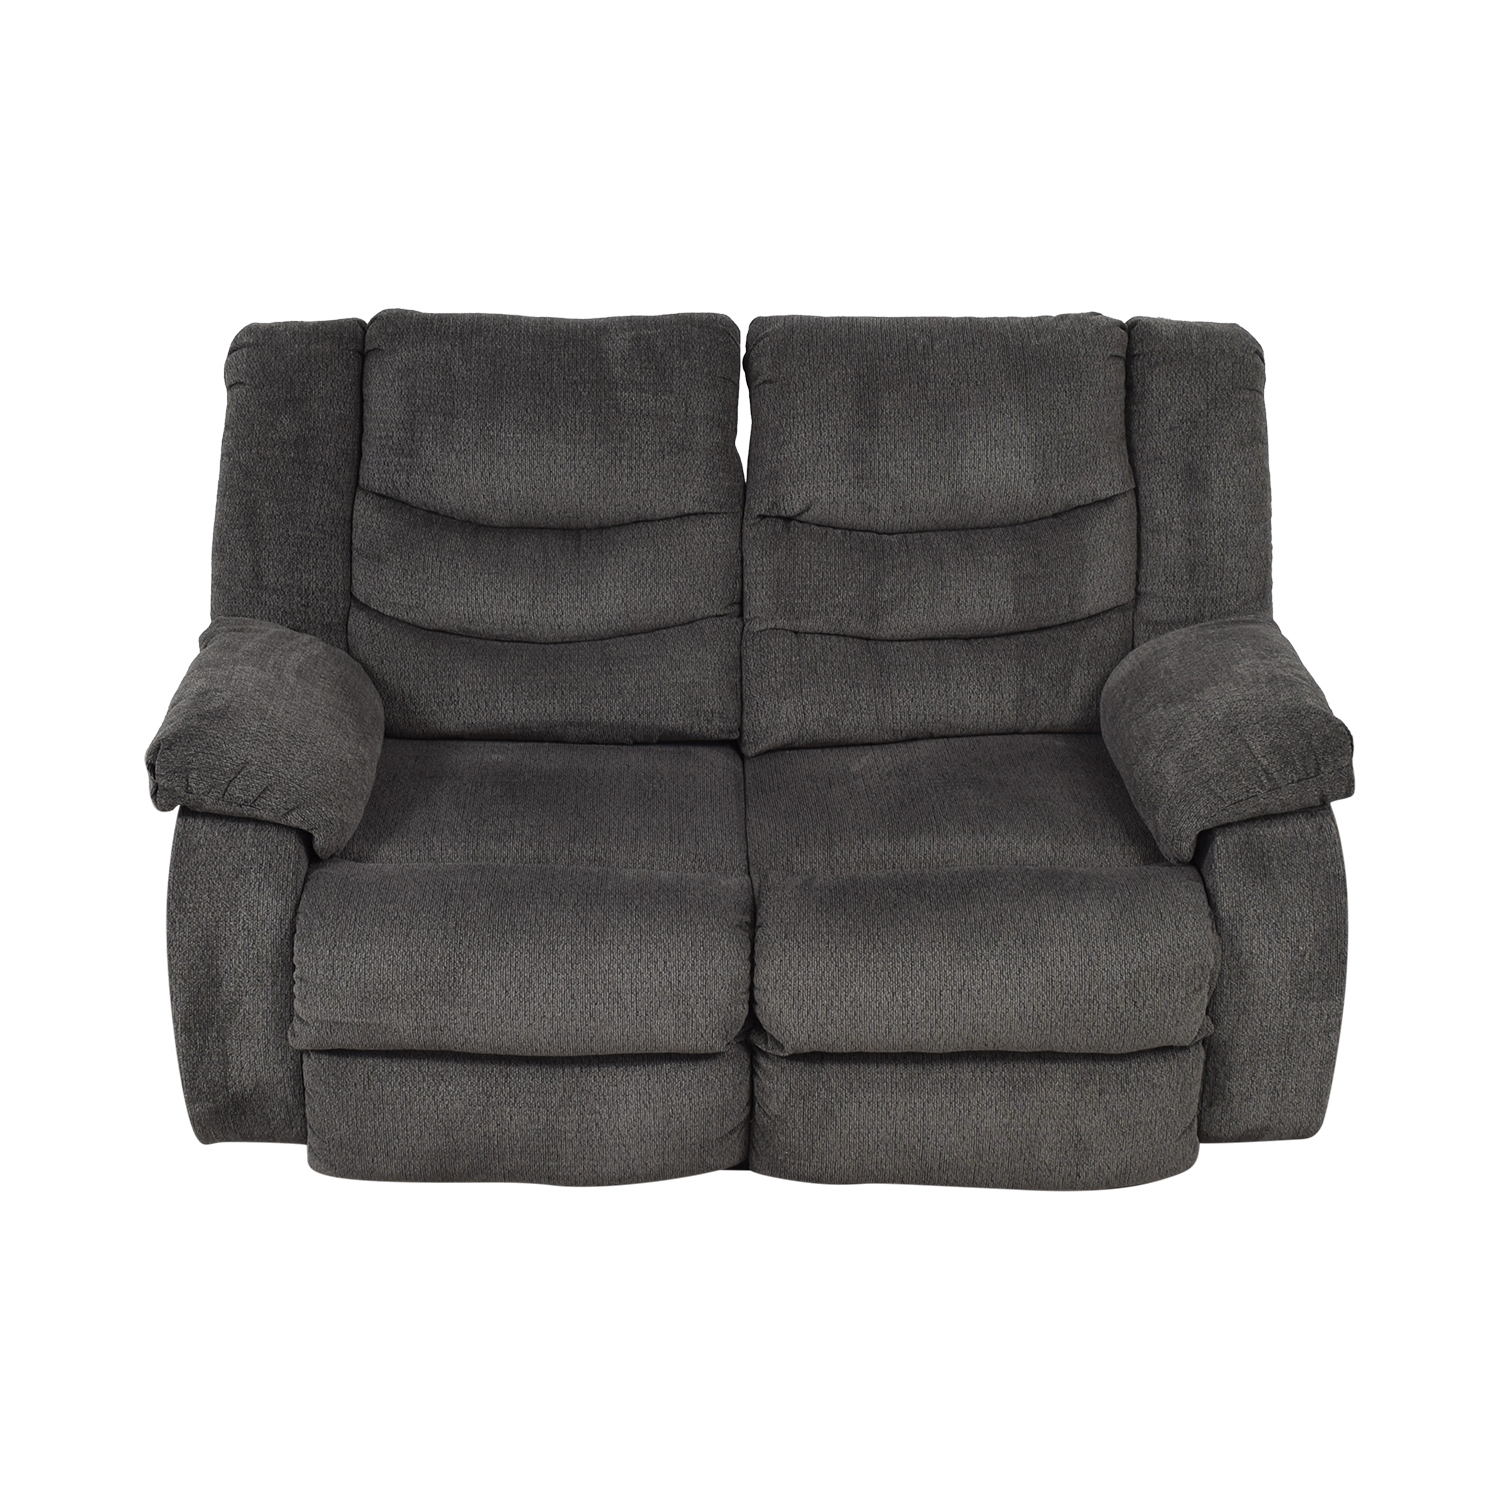 Ashley Furniture Ashley Furniture Gray Reclining Loveseat coupon